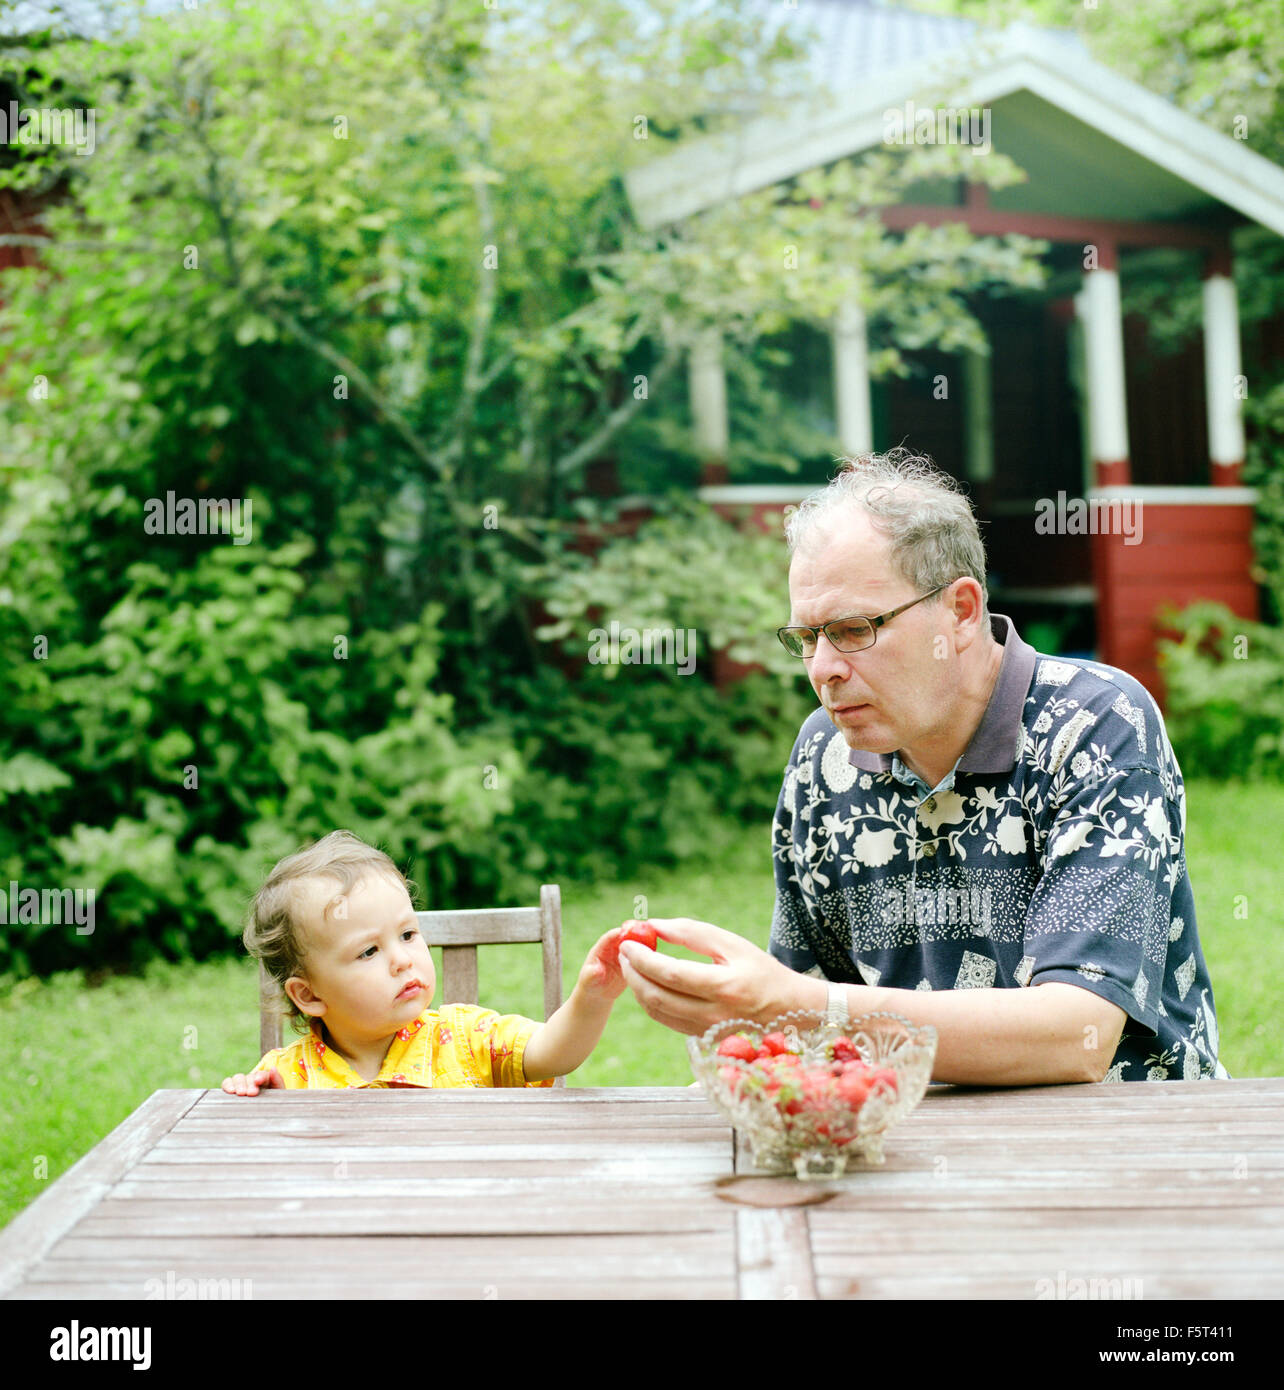 Finland, Uusimaa, Lapinjarvi, Grandfather giving strawberry to granddaughter (2-3) - Stock Image